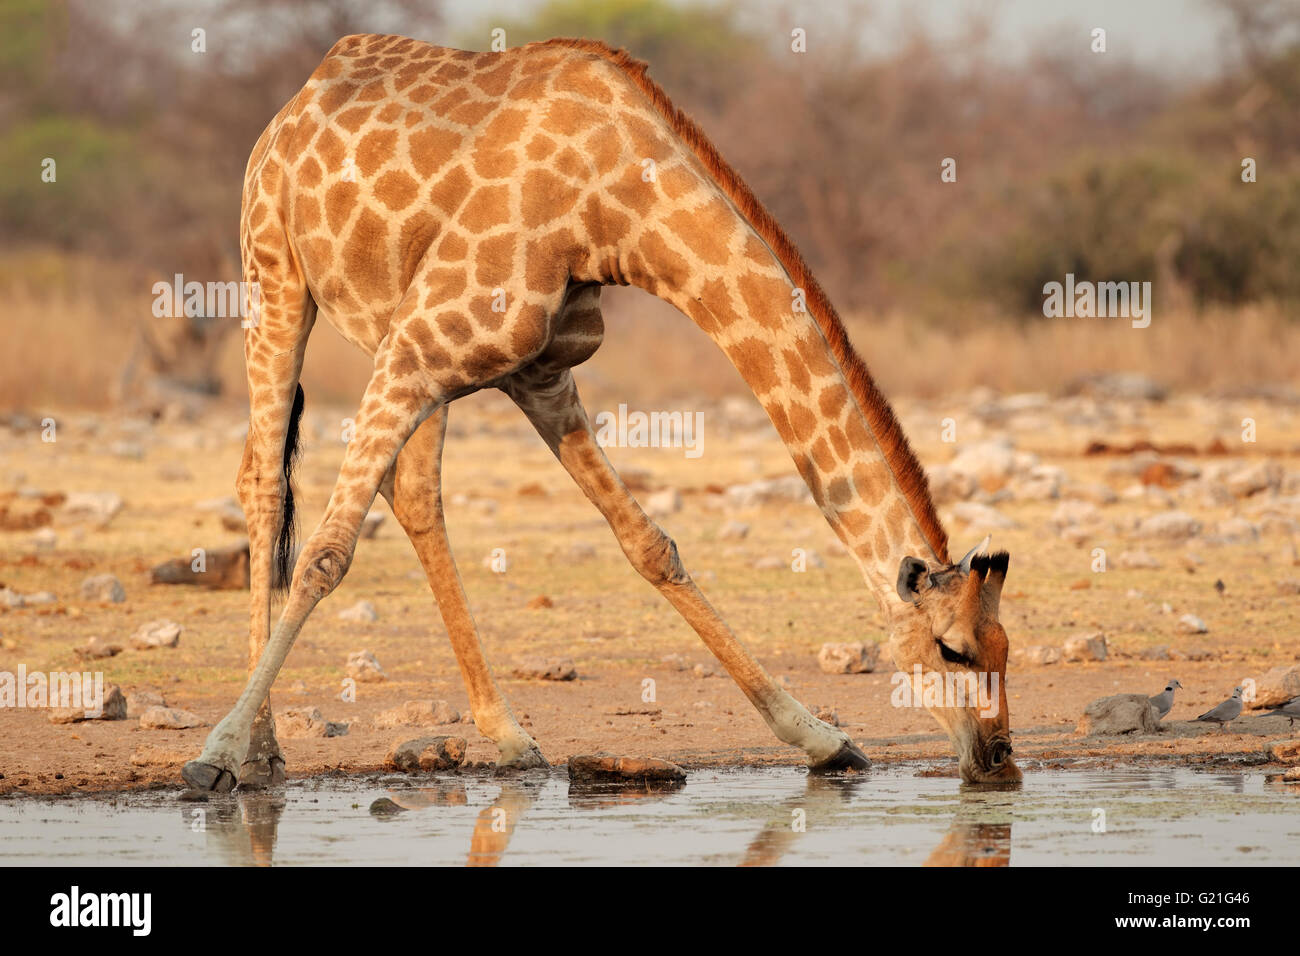 Girafe (Giraffa camelopardalis) eau potable, Etosha National Park, Namibie Photo Stock